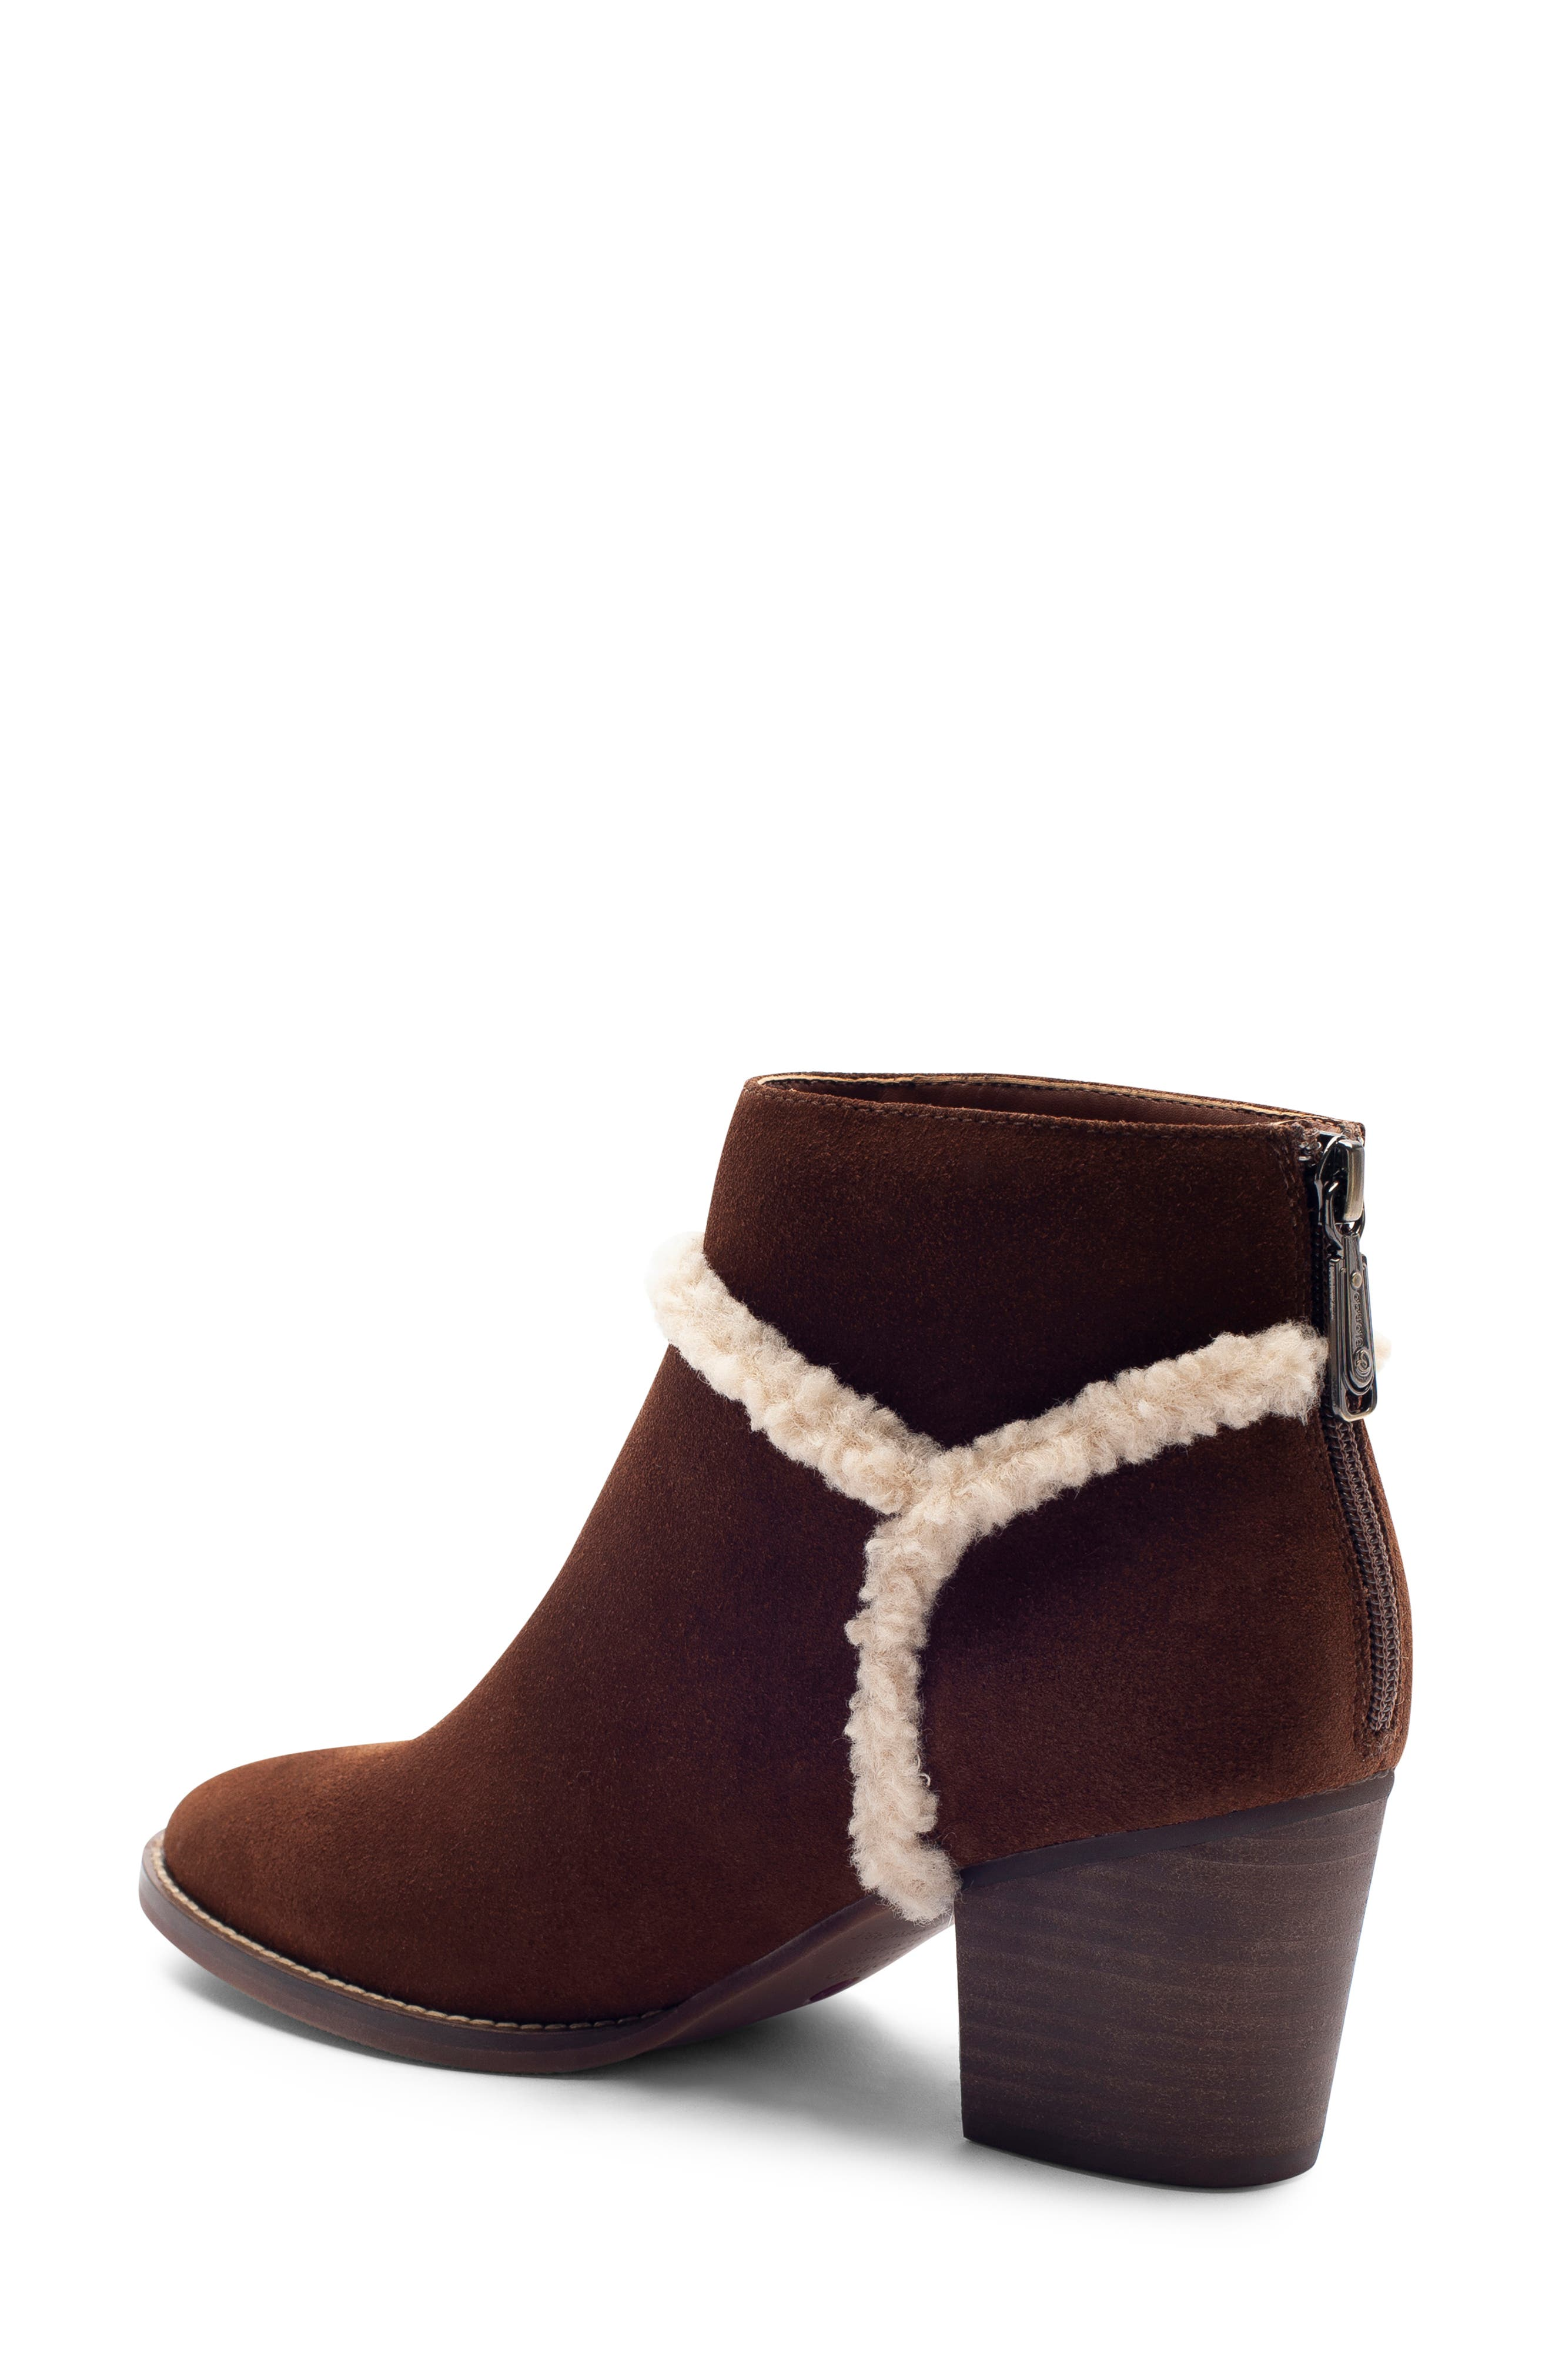 Netti Waterproof Bootie,                             Alternate thumbnail 2, color,                             CHESTNUT SUEDE